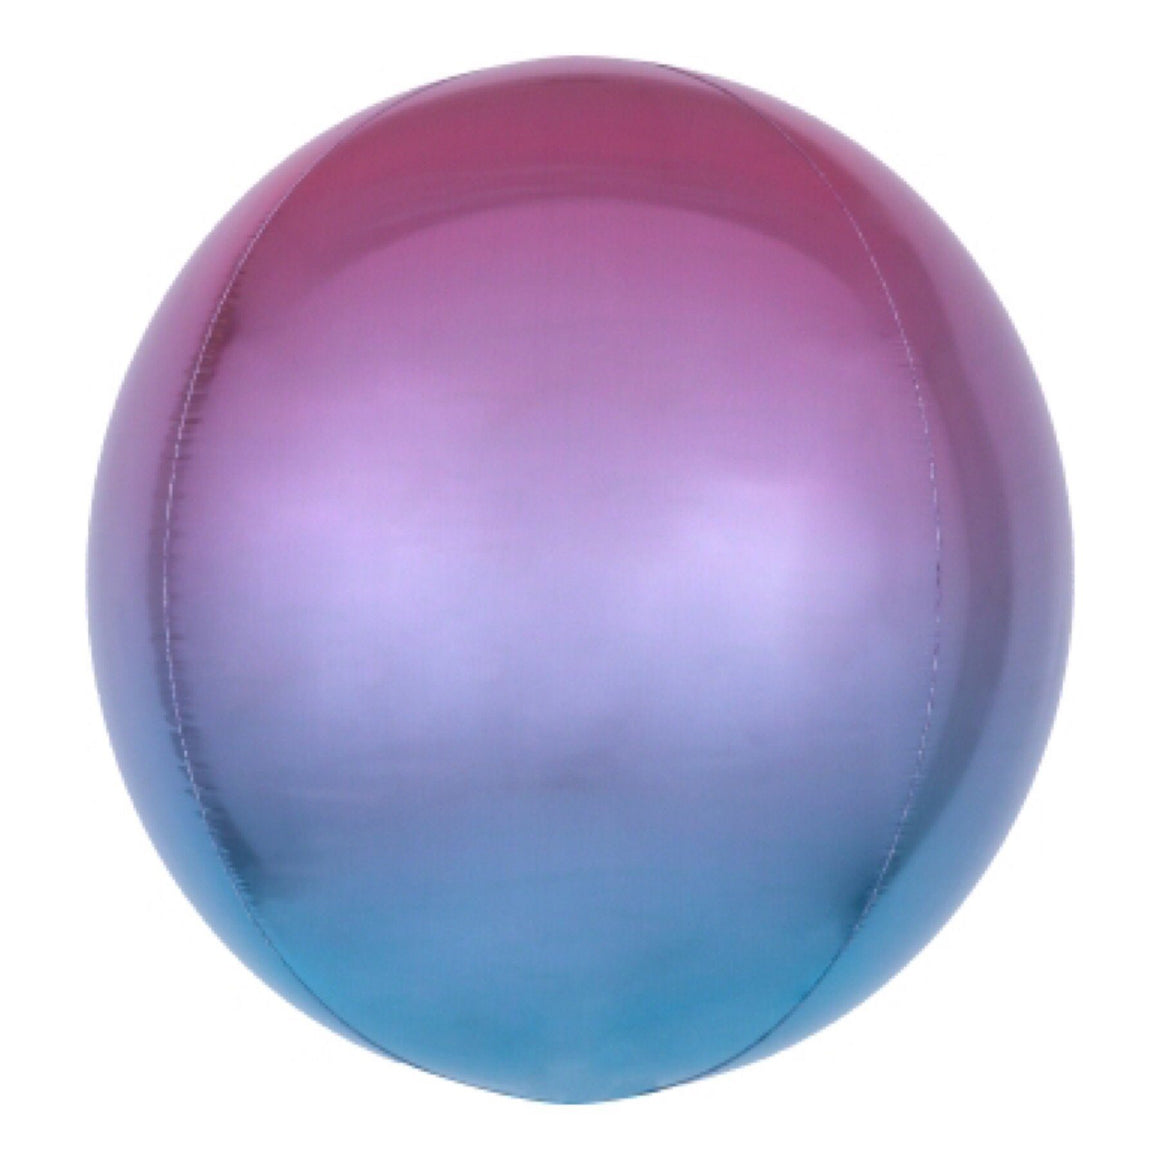 "BALLOON BAR - 16"" ORBZ ROUND OMBRE PURPLE BLUE, Balloons, Anagram - Bon + Co. Party Studio"